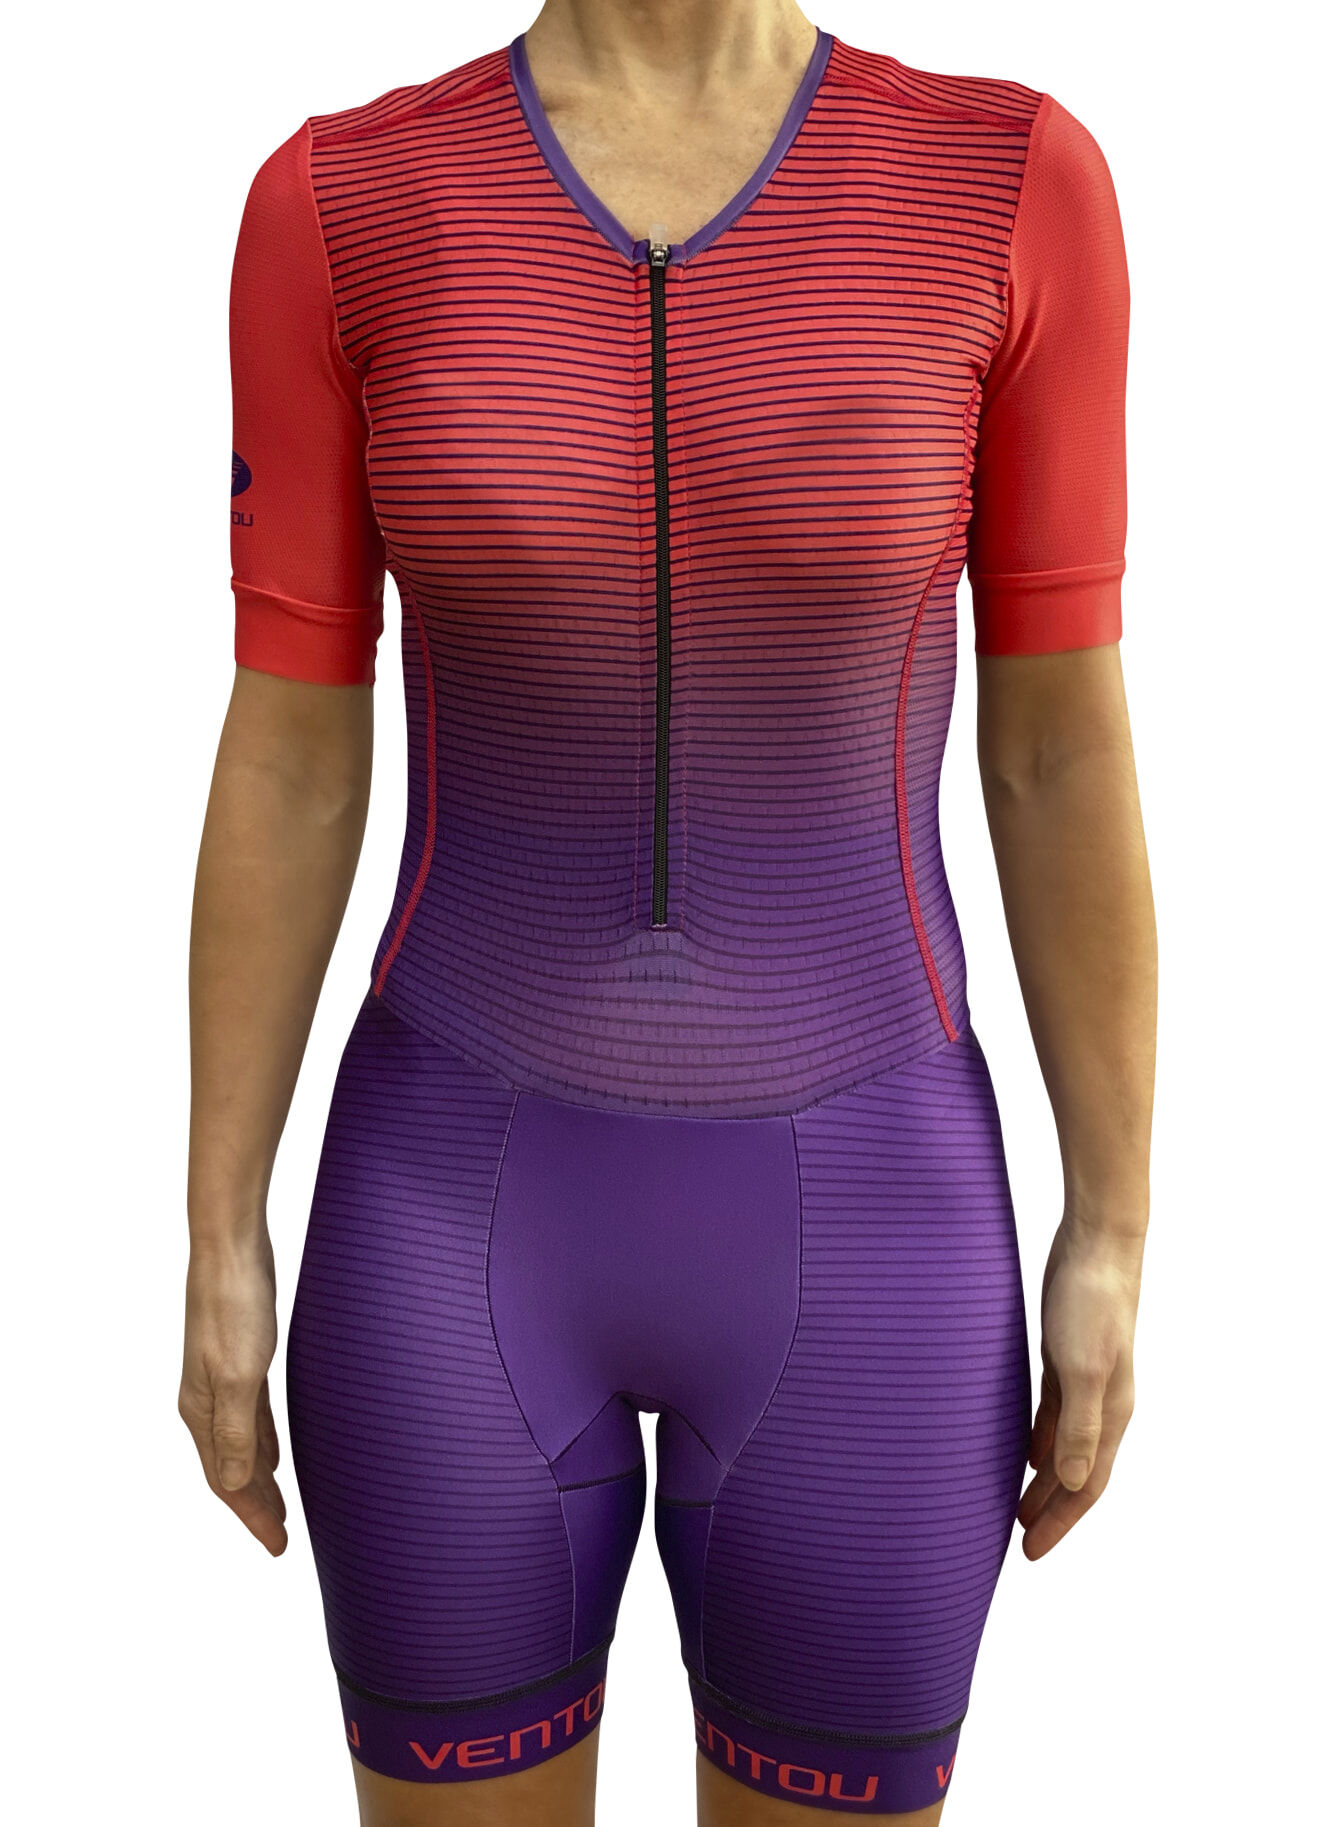 Transitions Womens Tri Suit Front